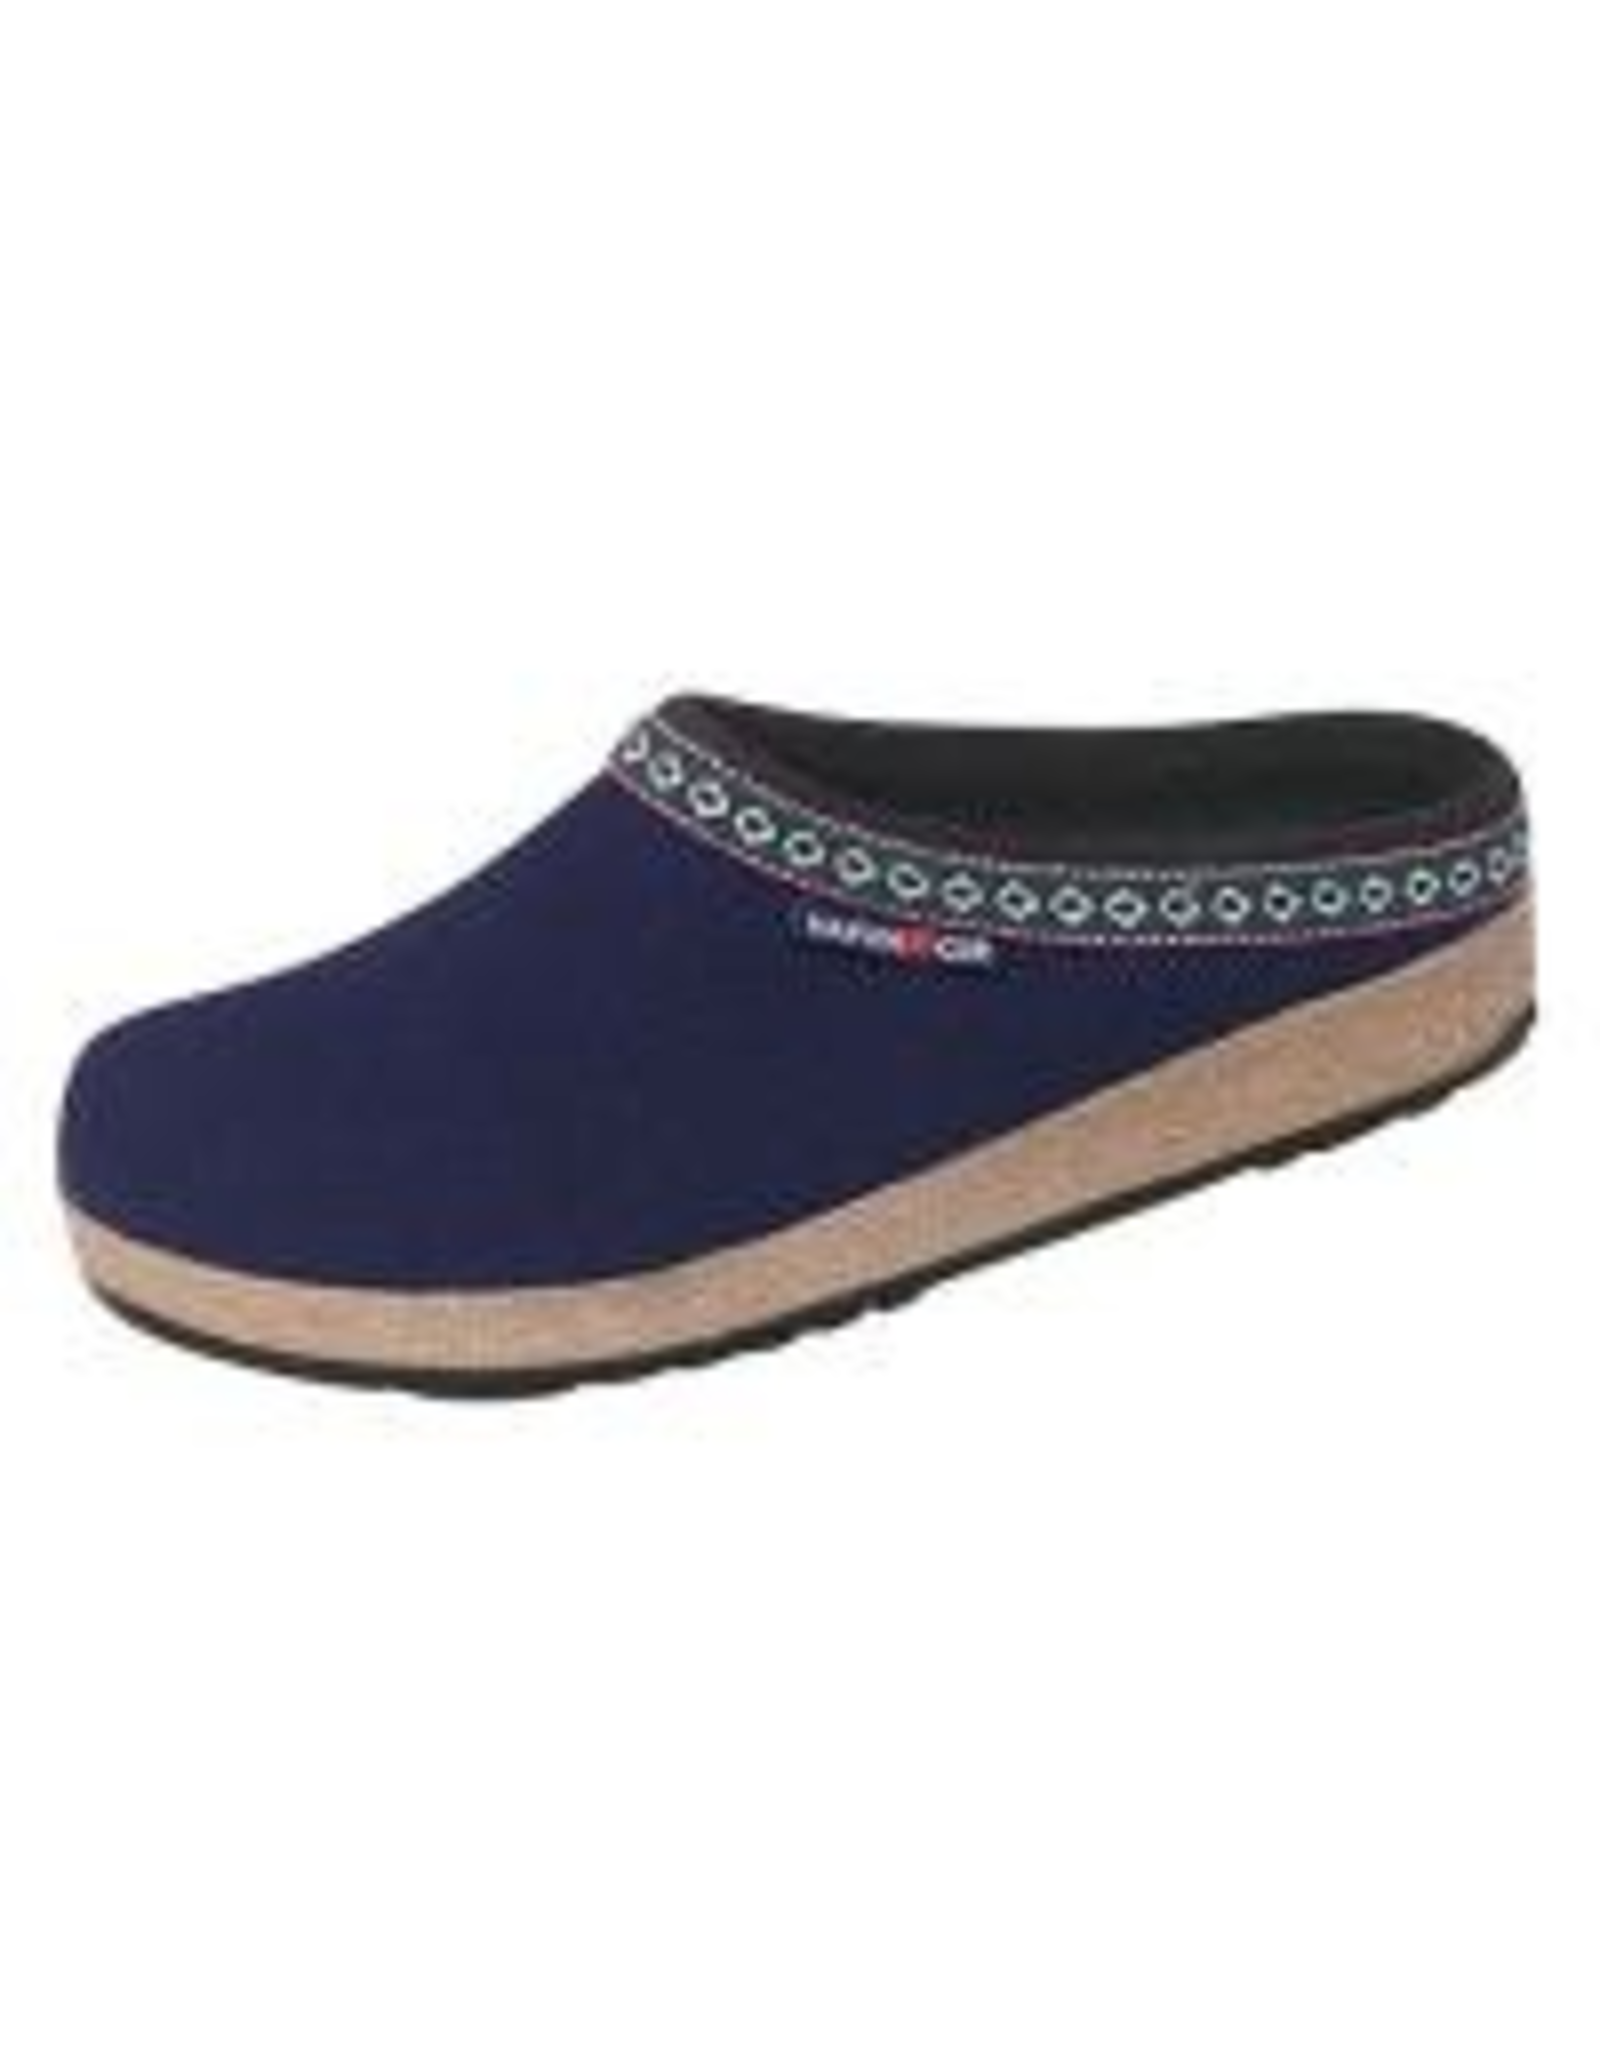 Haflinger Classic Grizzly Navy Clog